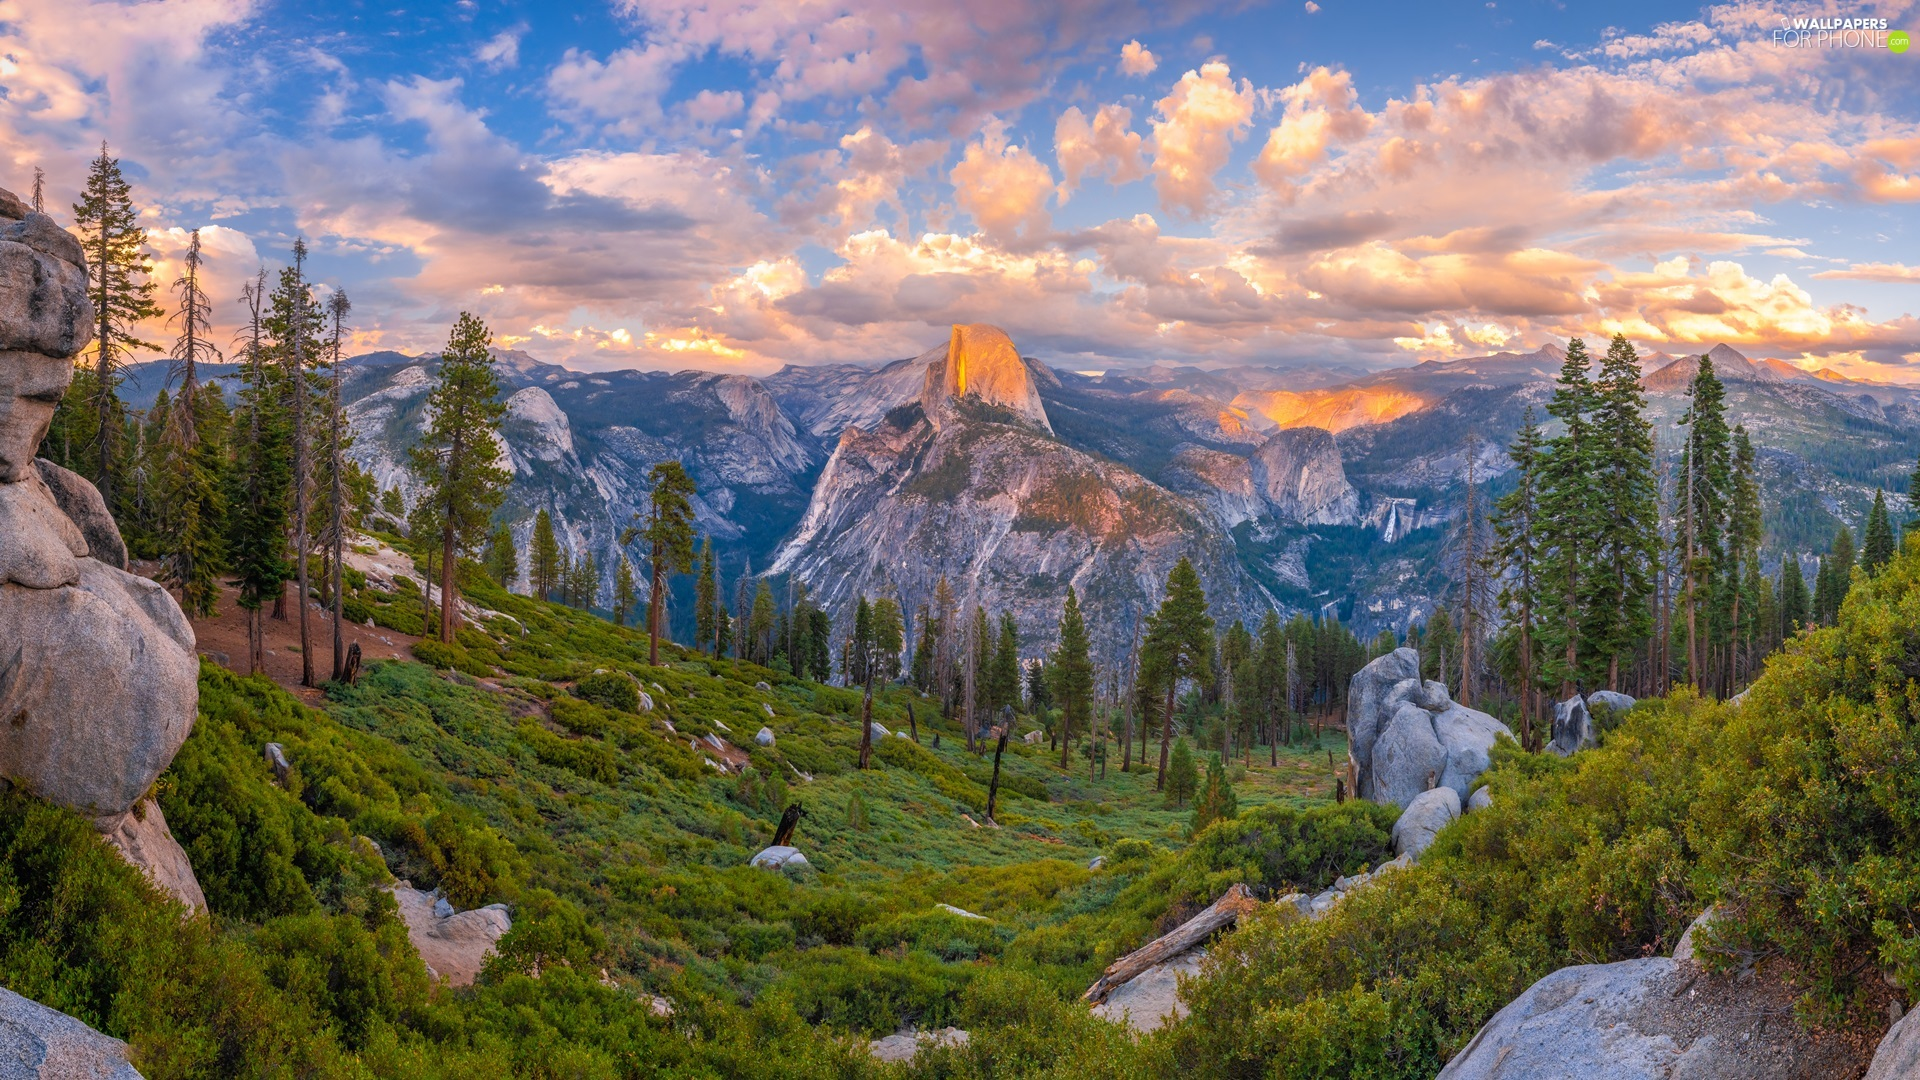 State of California, The United States, Yosemite National Park, trees, Sierra Nevada, clouds, Mountains, rocks, viewes